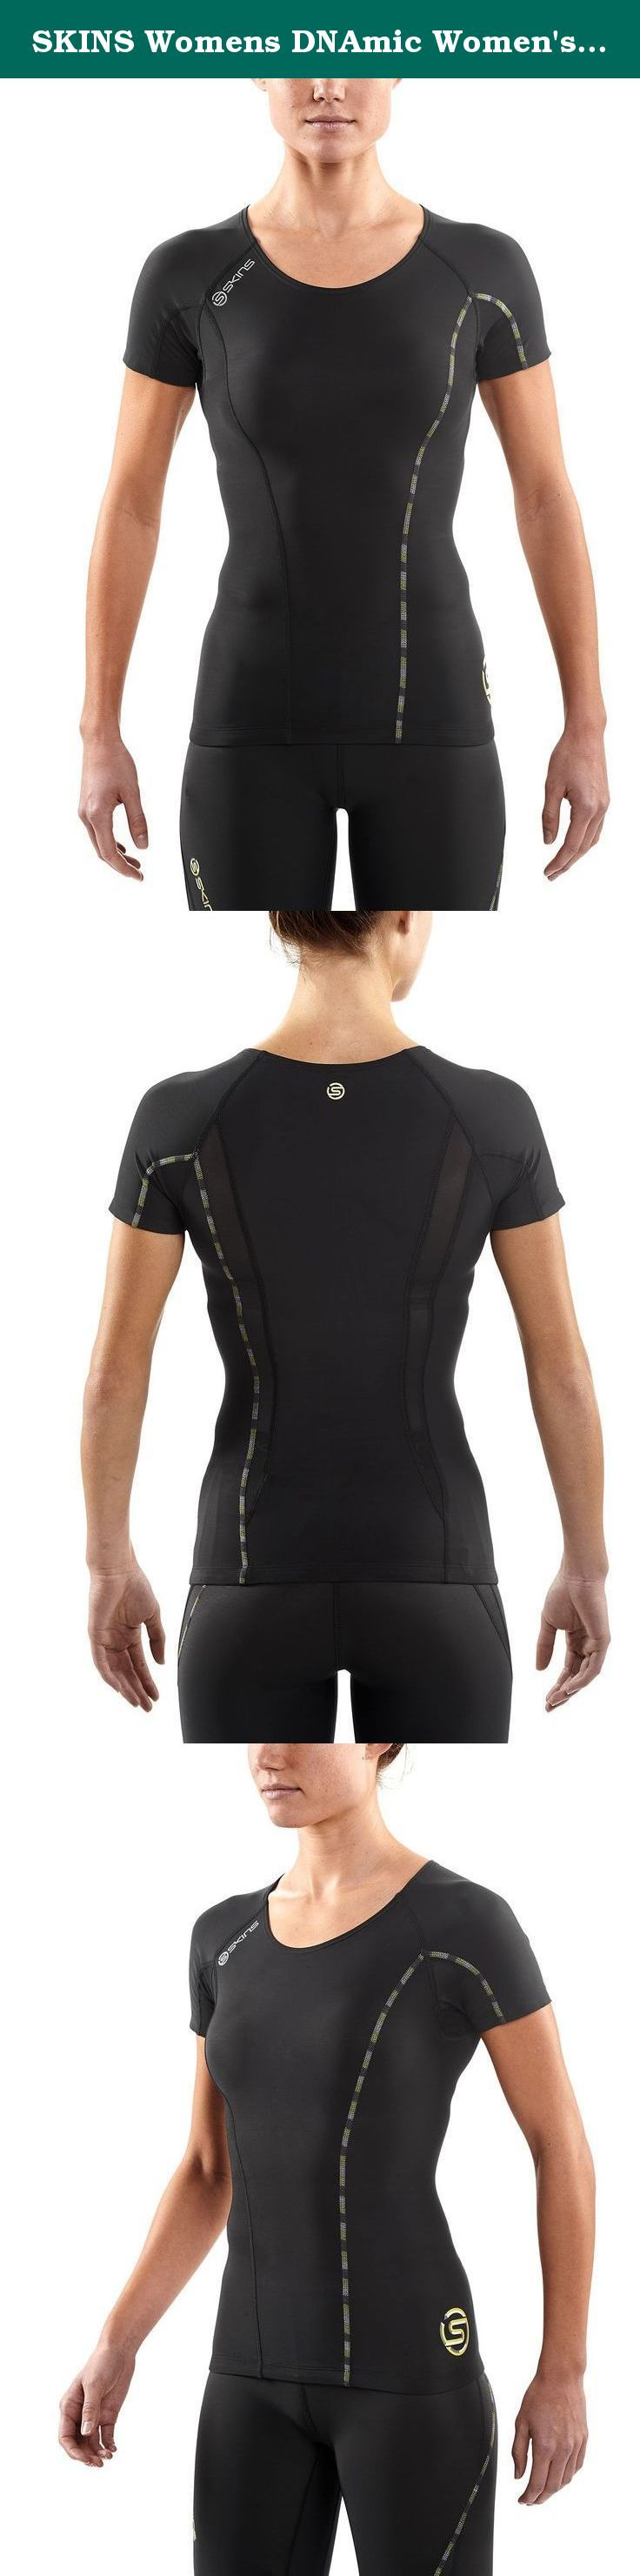 SKINS Womens DNAmic Women's Compression Short sleeve Top, black, Large. The SKINS dynamic range brings our original scientifically proven sports compression clothing line to new fit and performance highs. If your sport means that you need to push your upper body to the limit and be fighting fit the next morning, then the dynamic compression top is what you're in need of. Our engineered gradient compression increases blood flow and oxygen supply to your muscles to improve your performance...